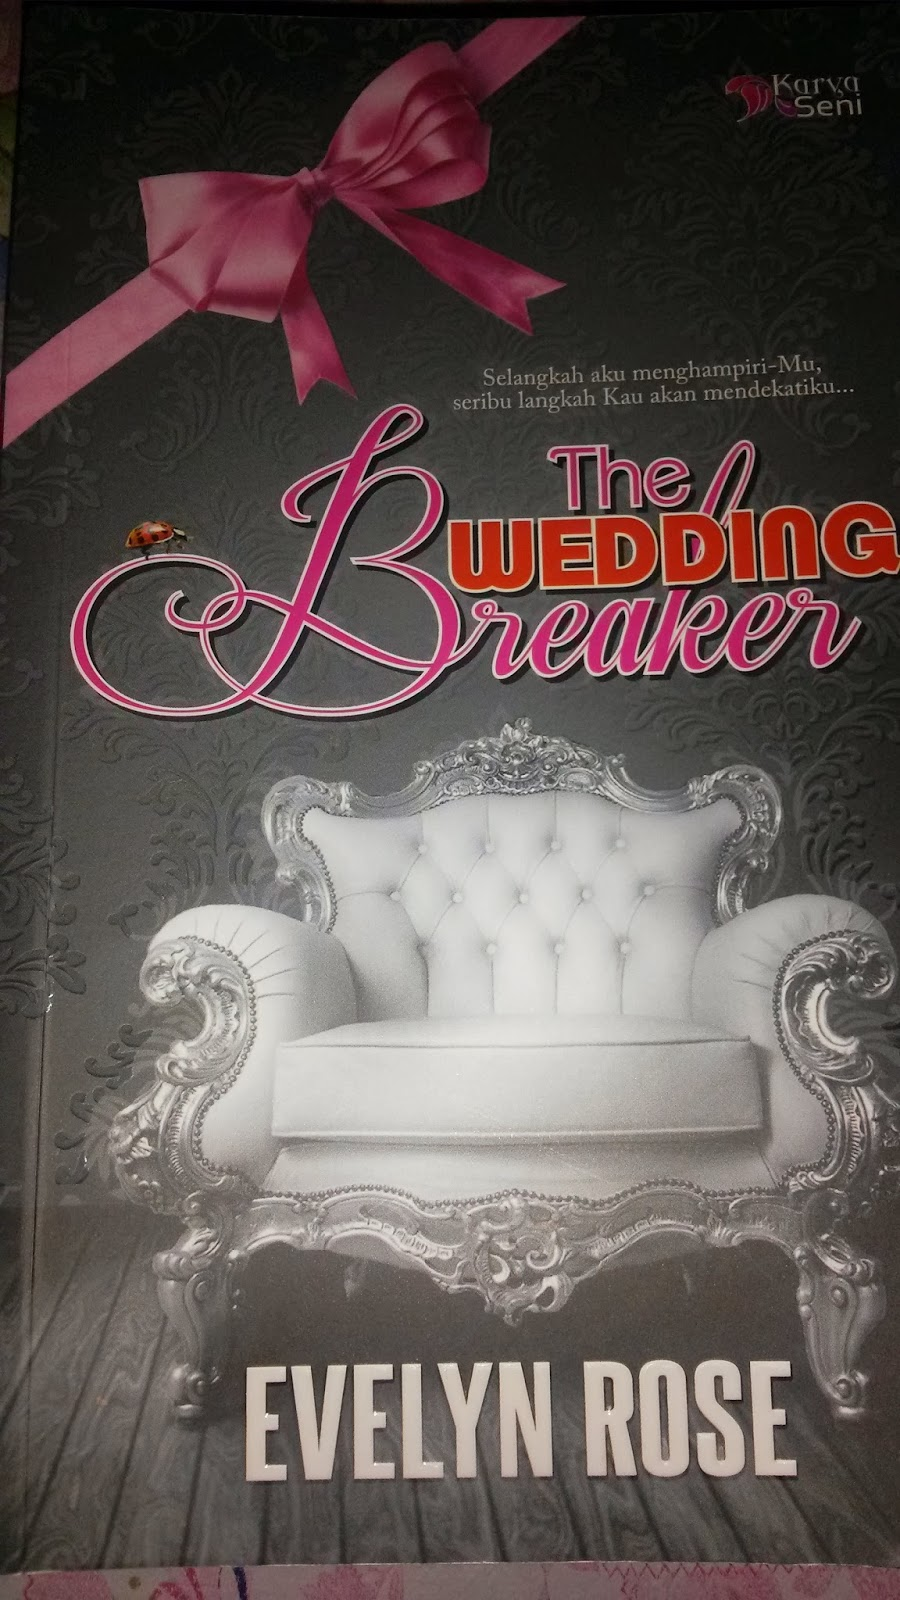 the wedding breaker, ariana rose, evelyn rose, slot akasia, novel best